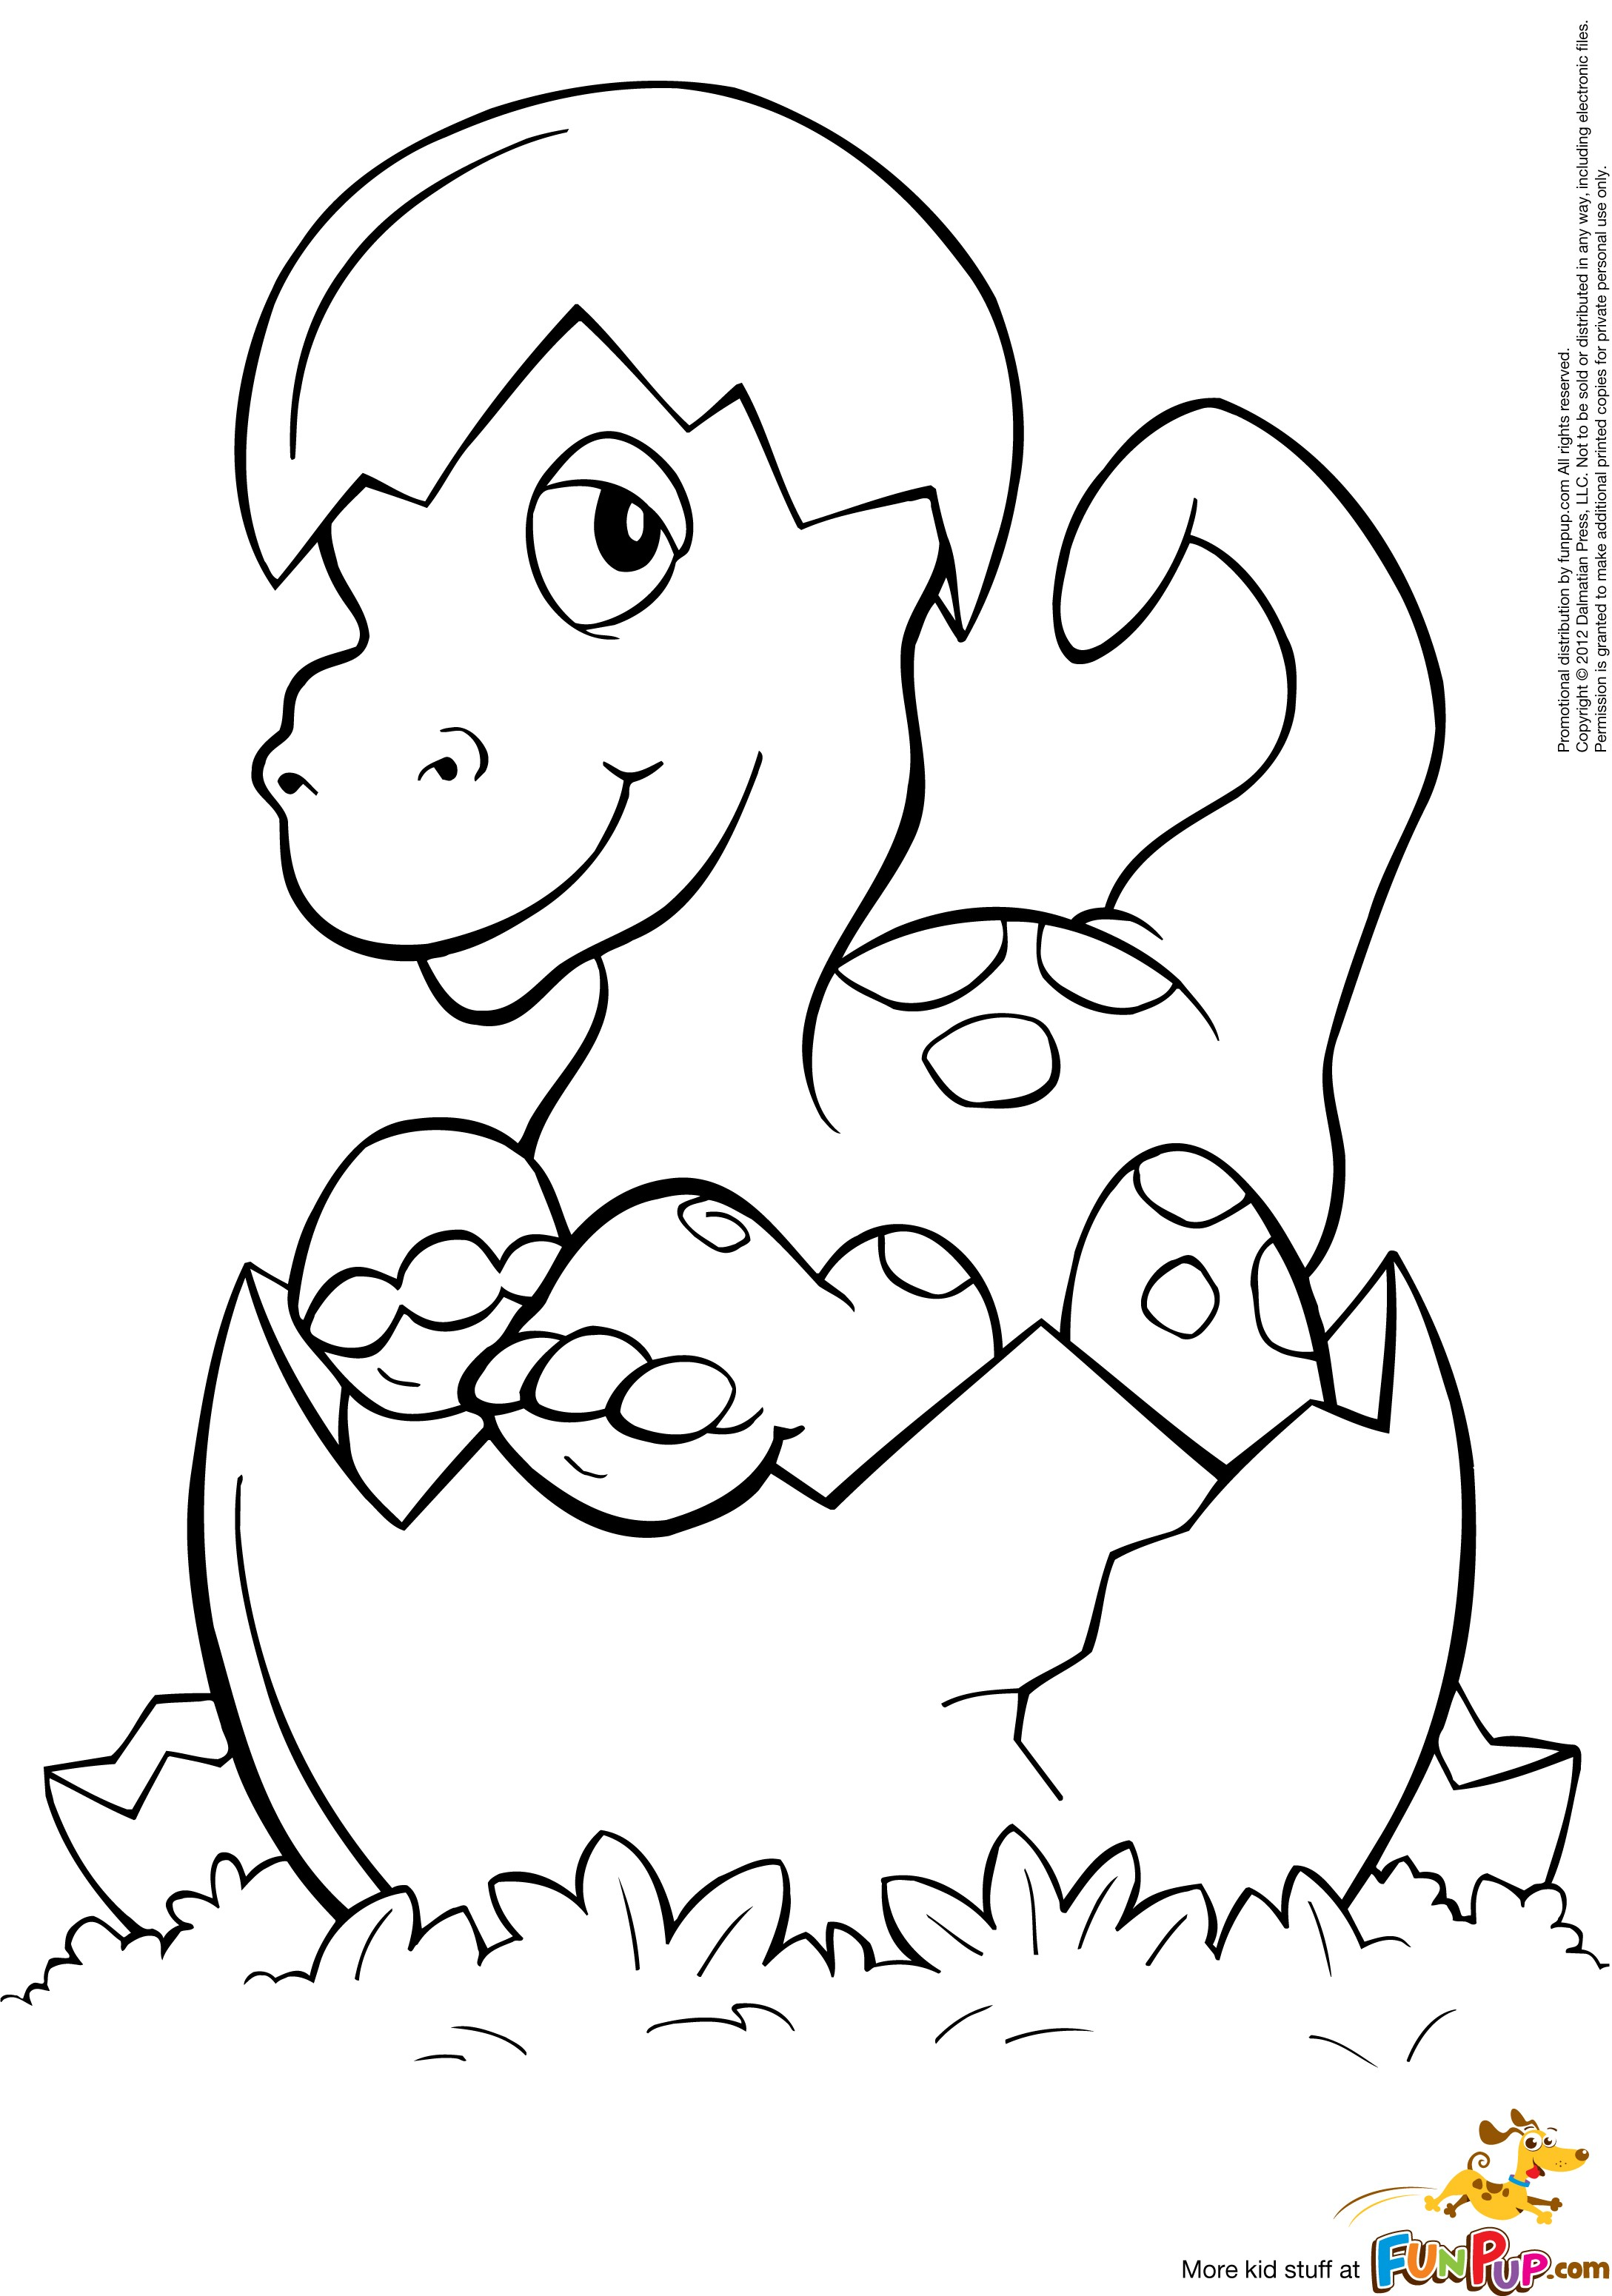 Baby Dino Drawing At Getdrawings Com Free For Personal